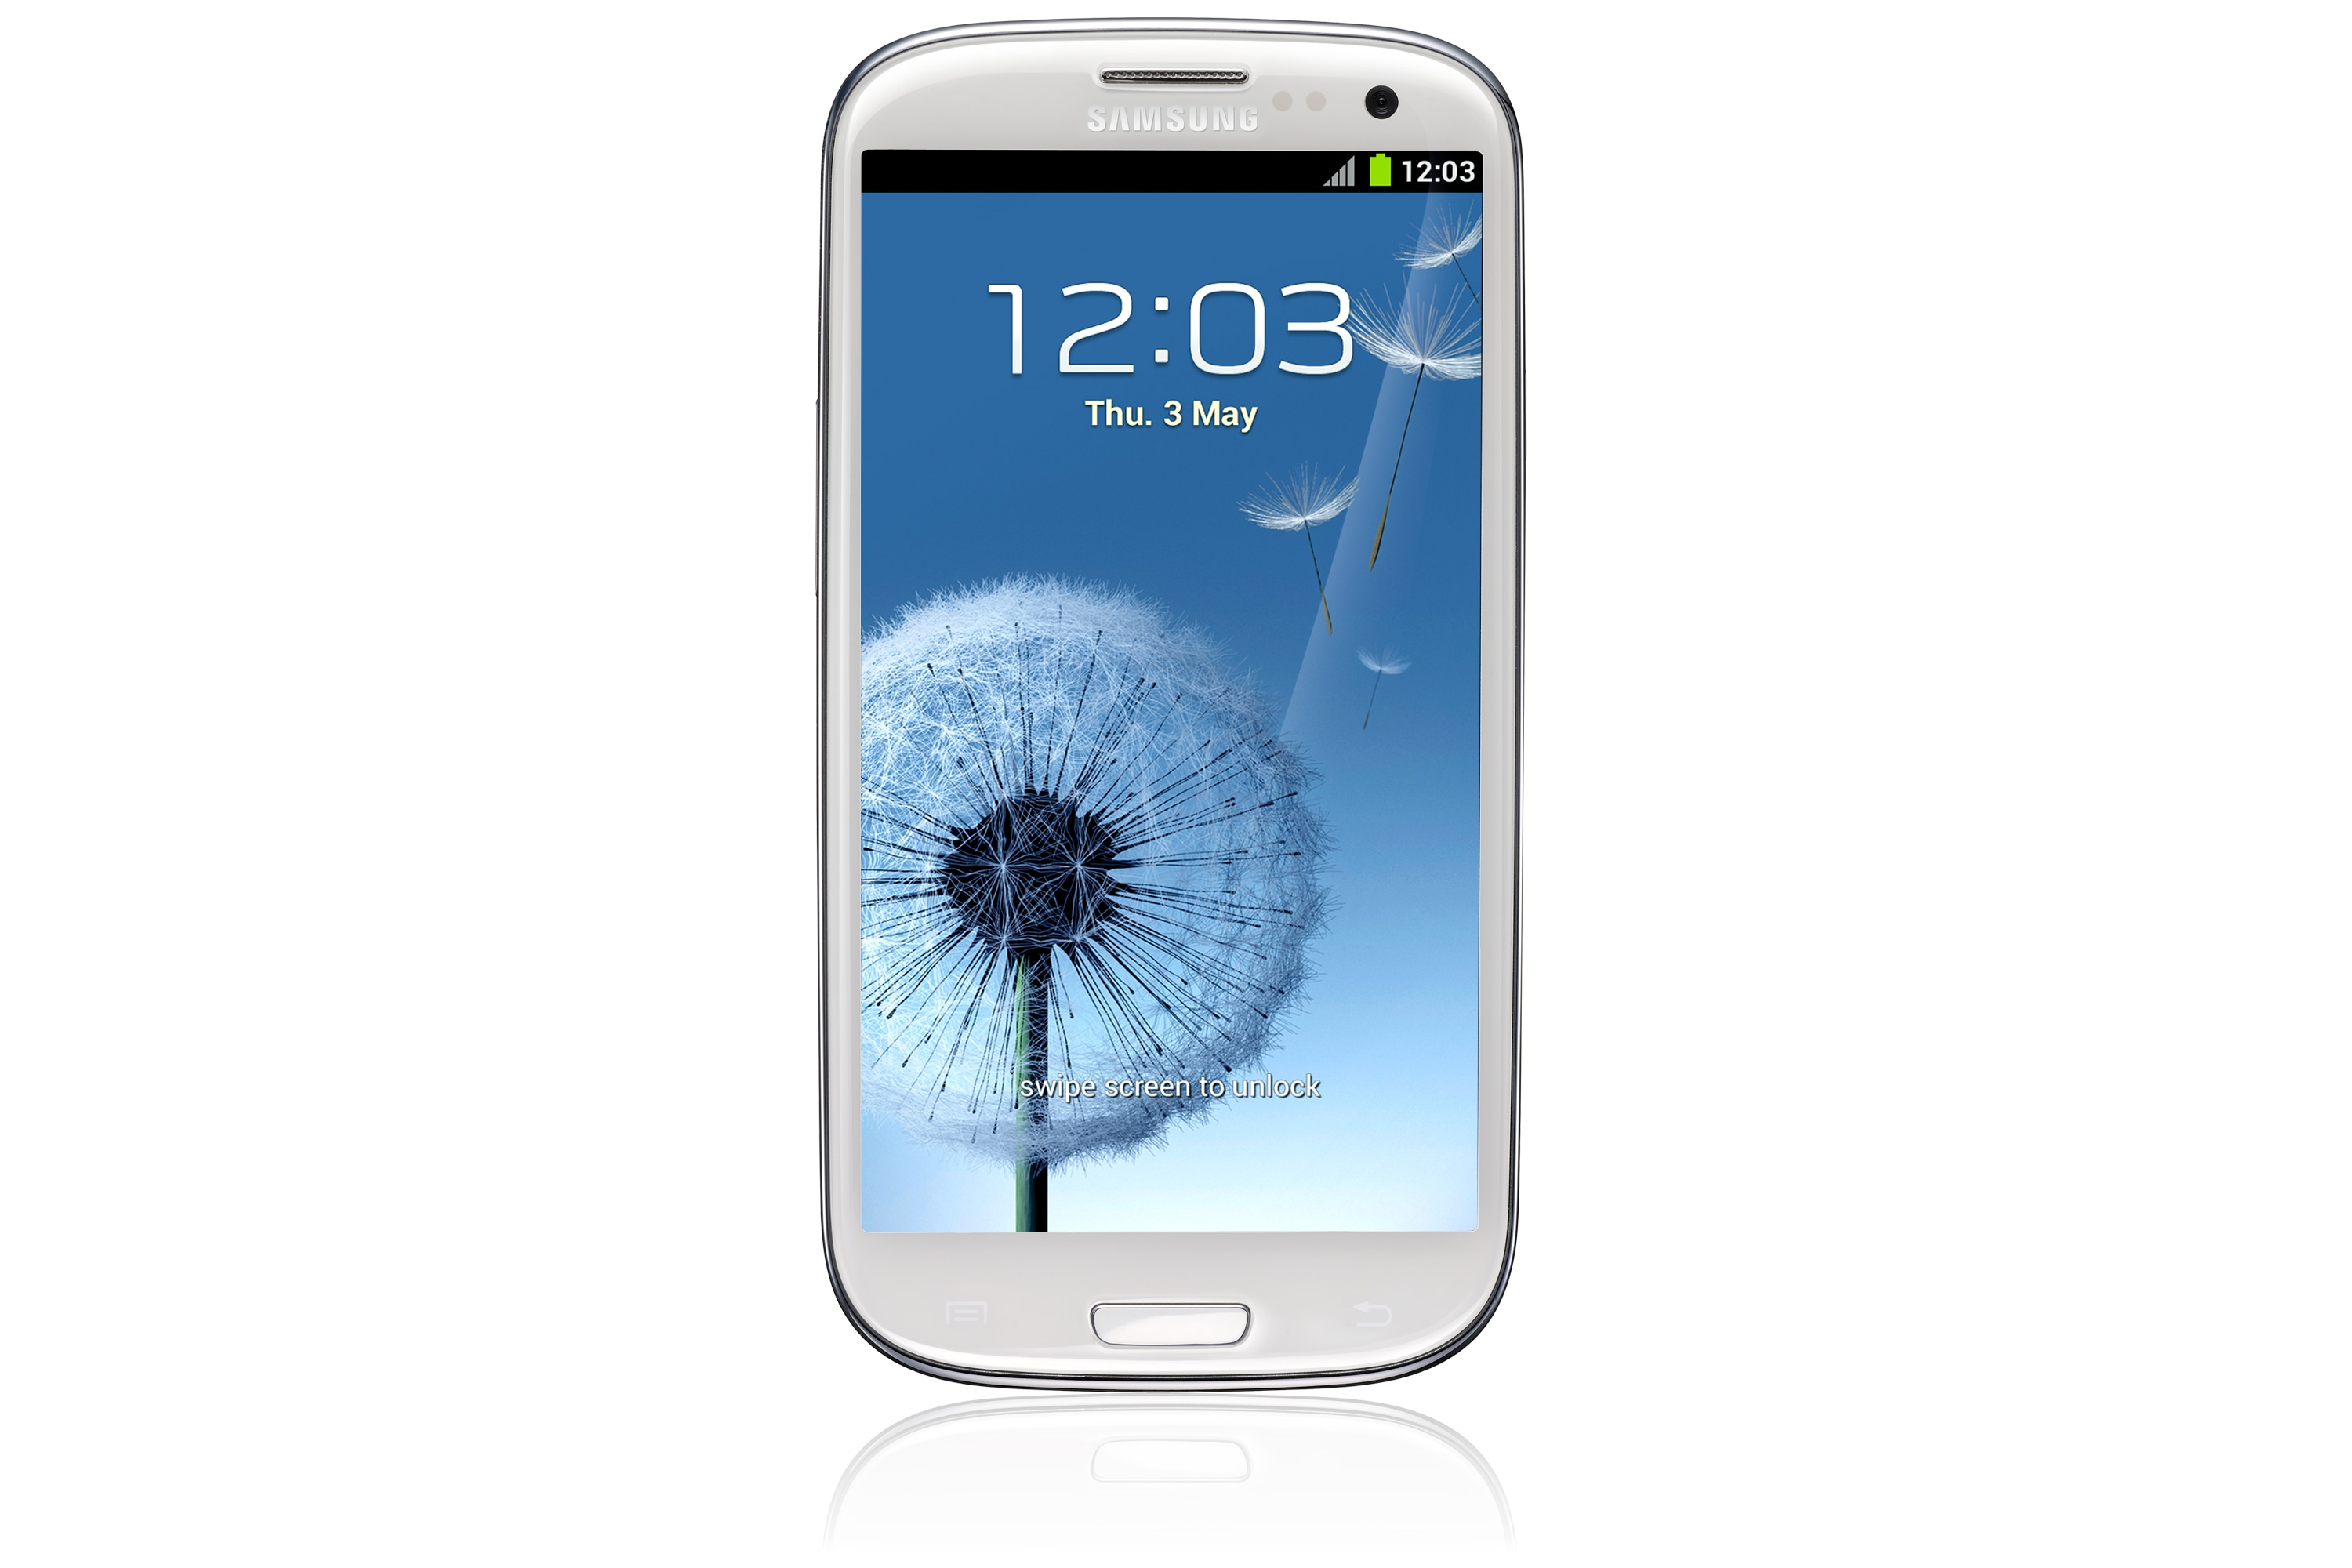 Galaxy S III I9300 Android